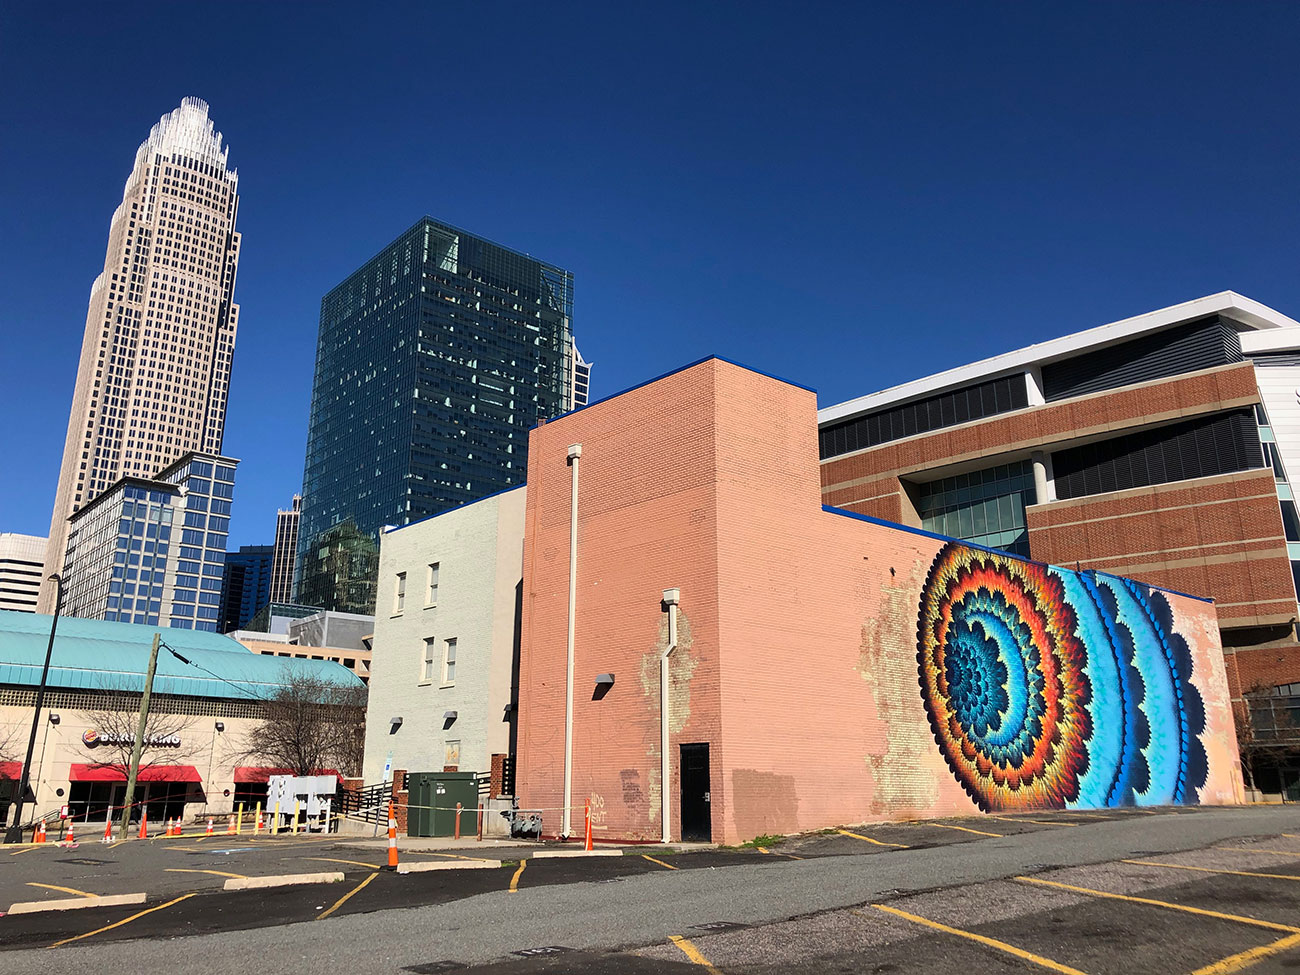 The definitive guide to 60+ Charlotte street murals, mapped